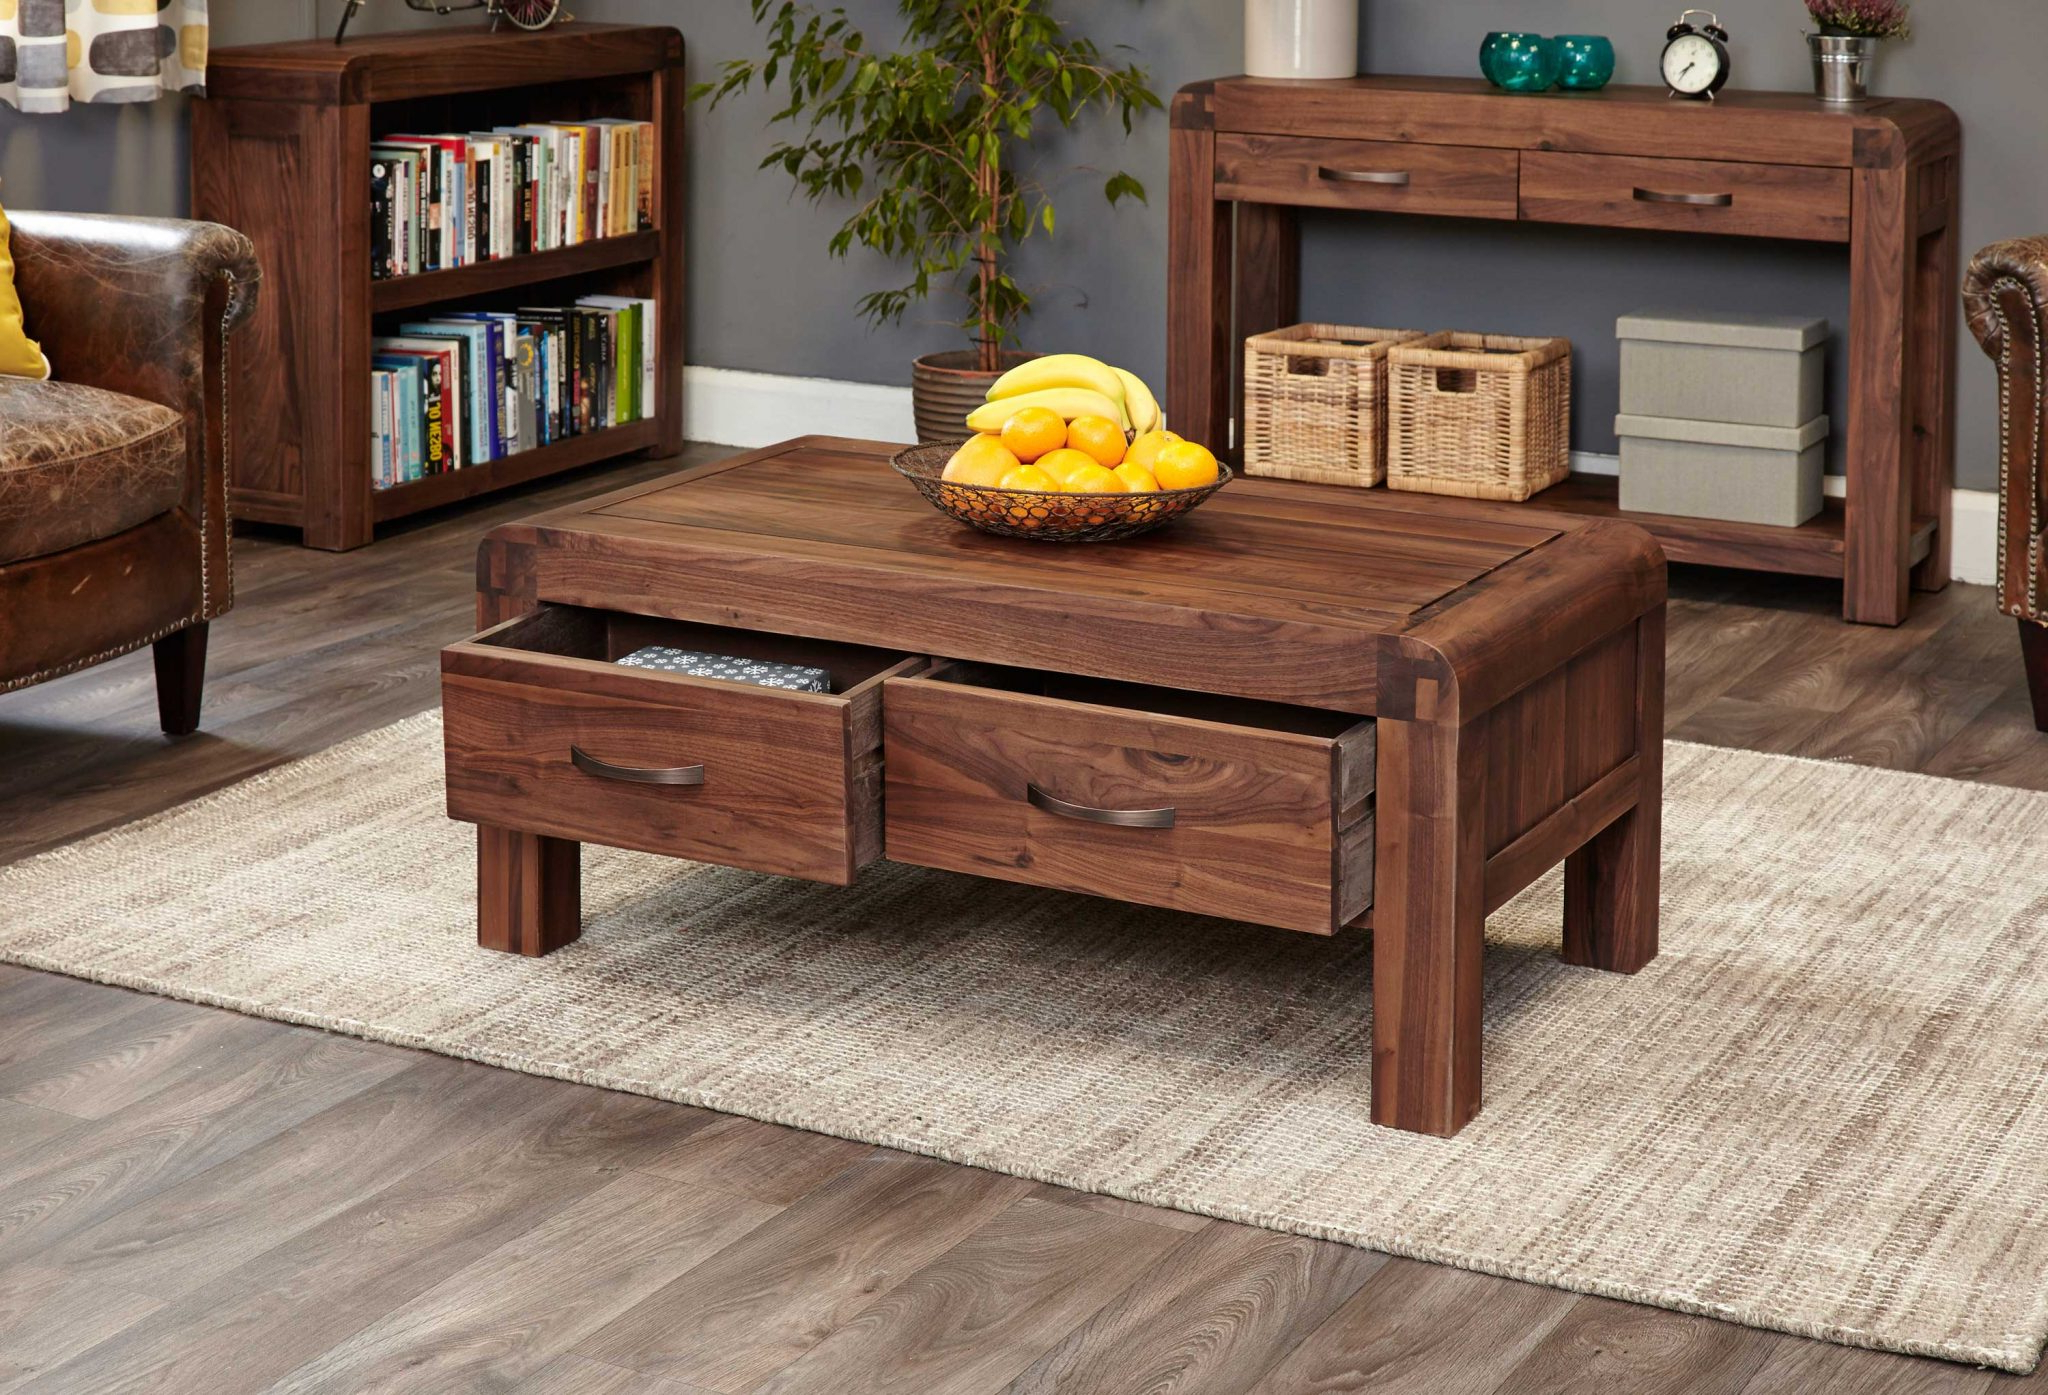 Fashionable Walnut 4 Drawer Coffee Tables For Baumhaus Shiro Solid Walnut Coffee Table – 4 Drawers – Lm Furnishings (View 5 of 20)